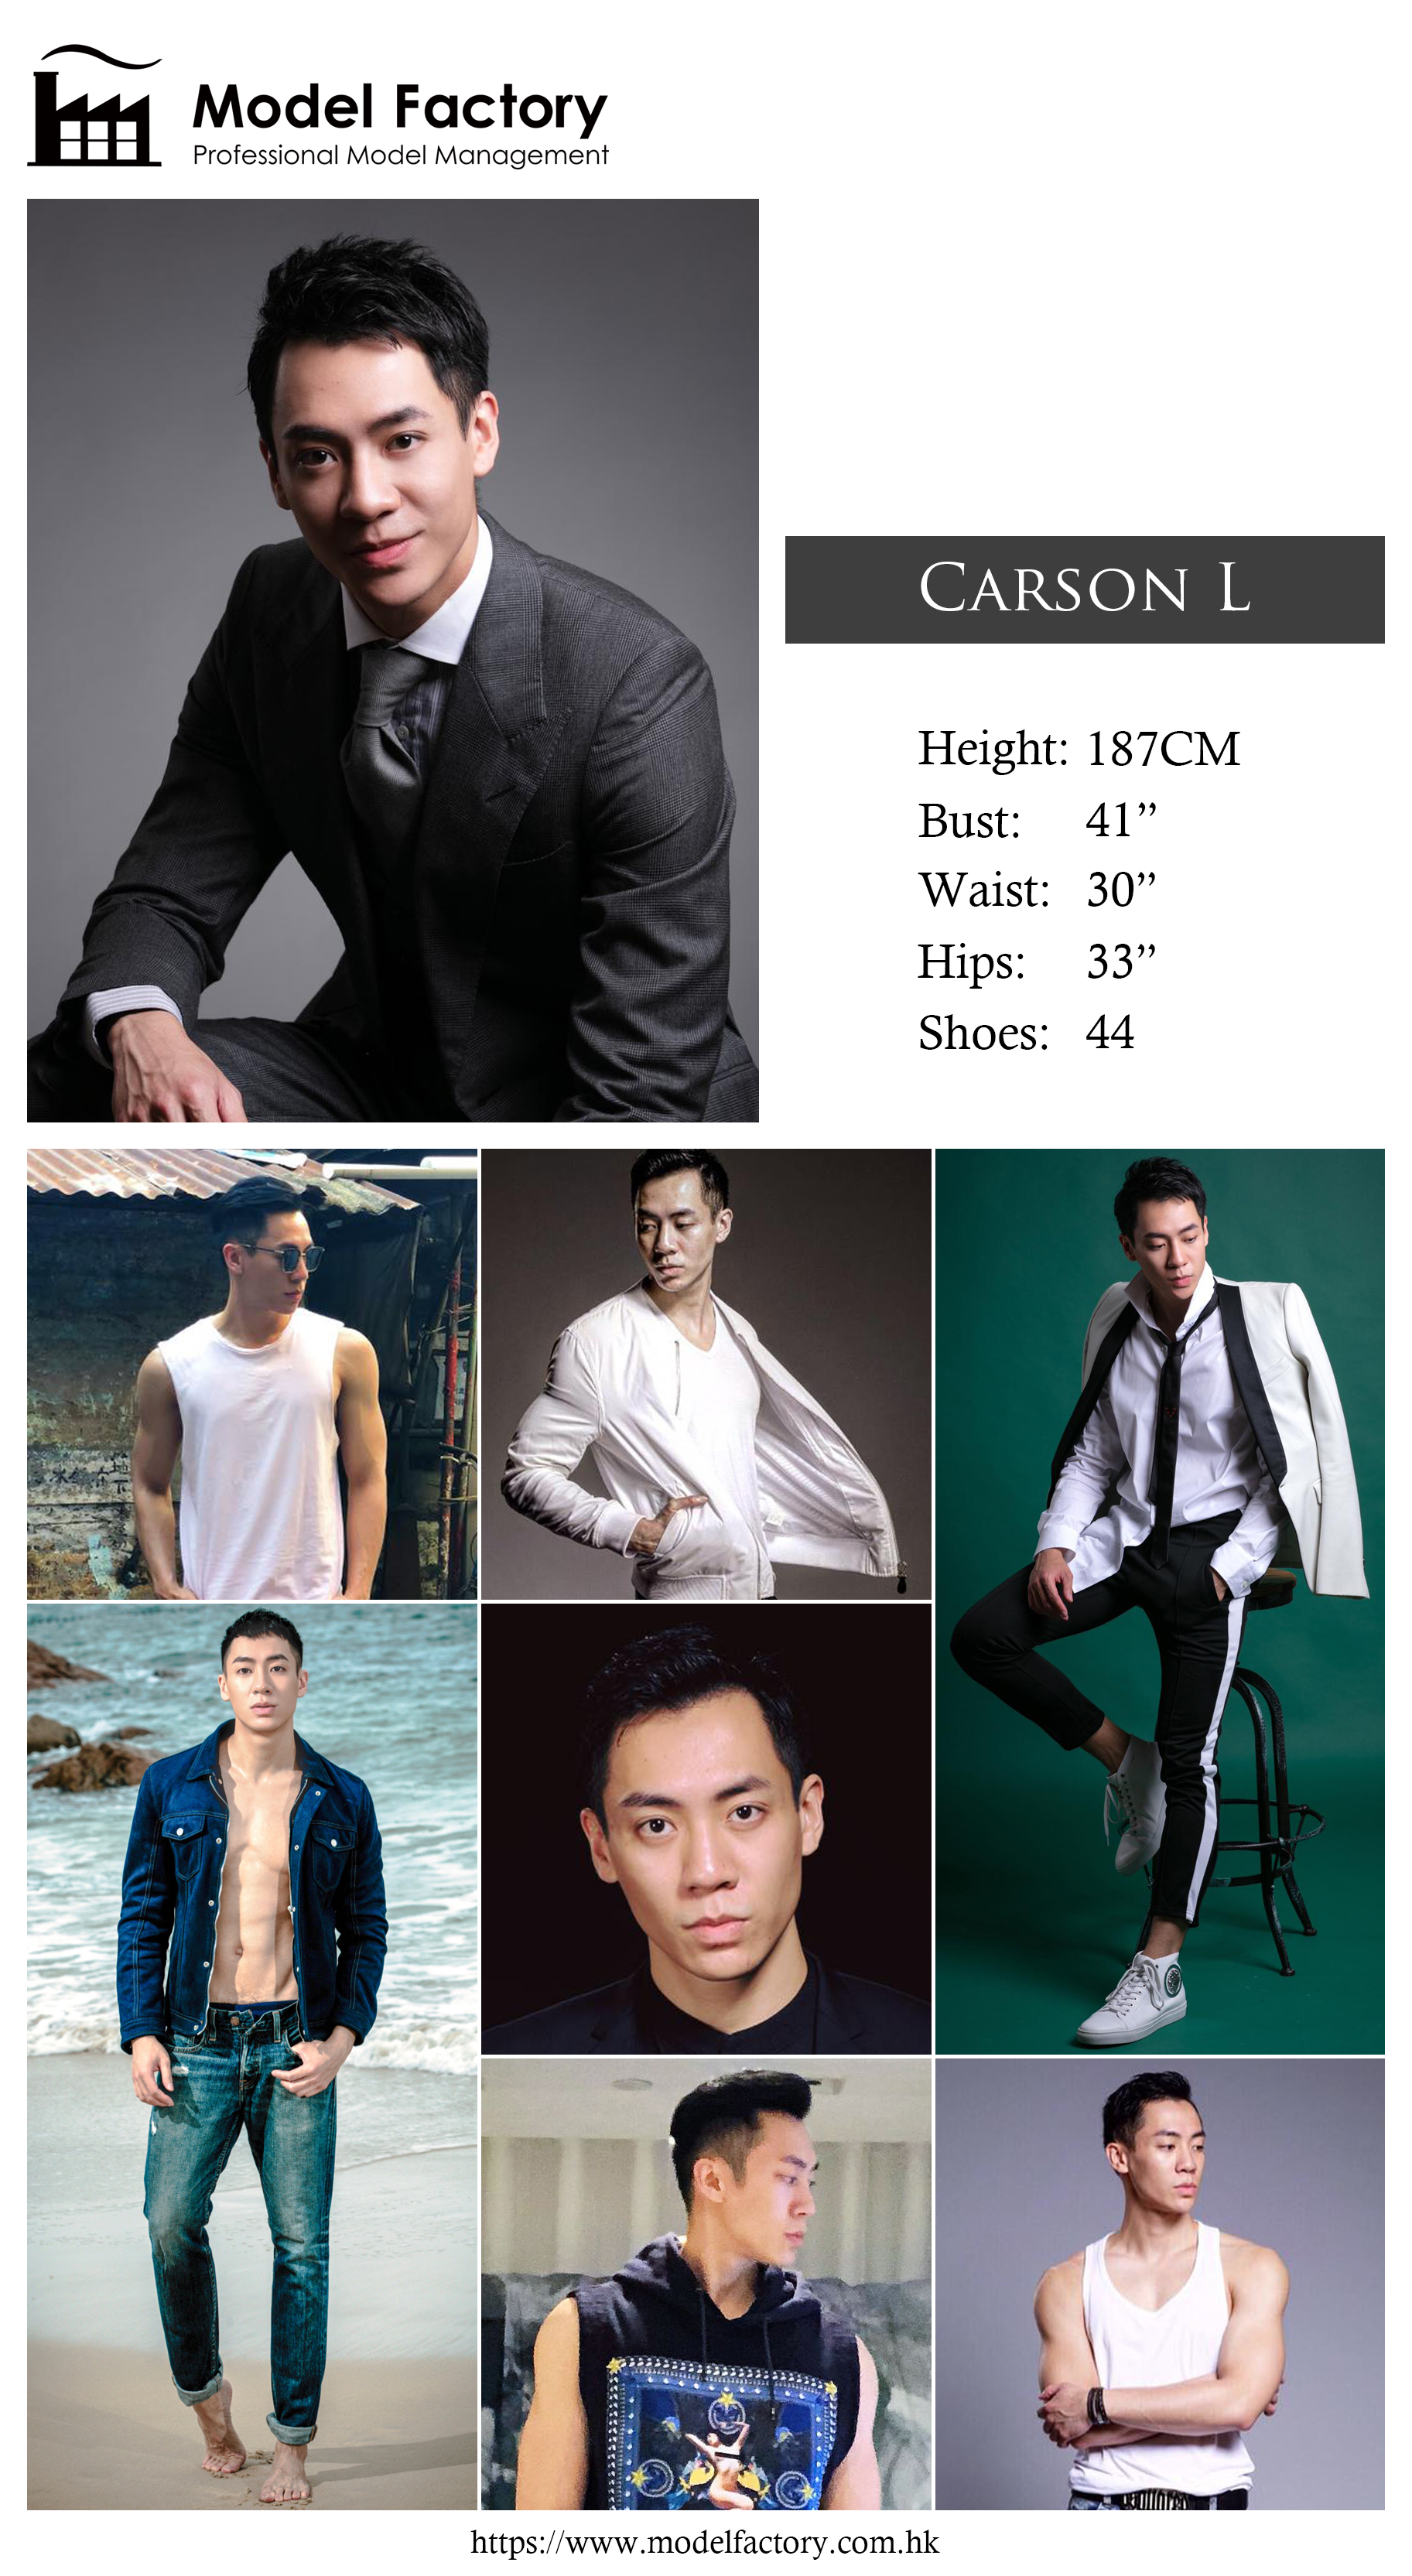 Model Factory Hong Kong Male Model CarsonL